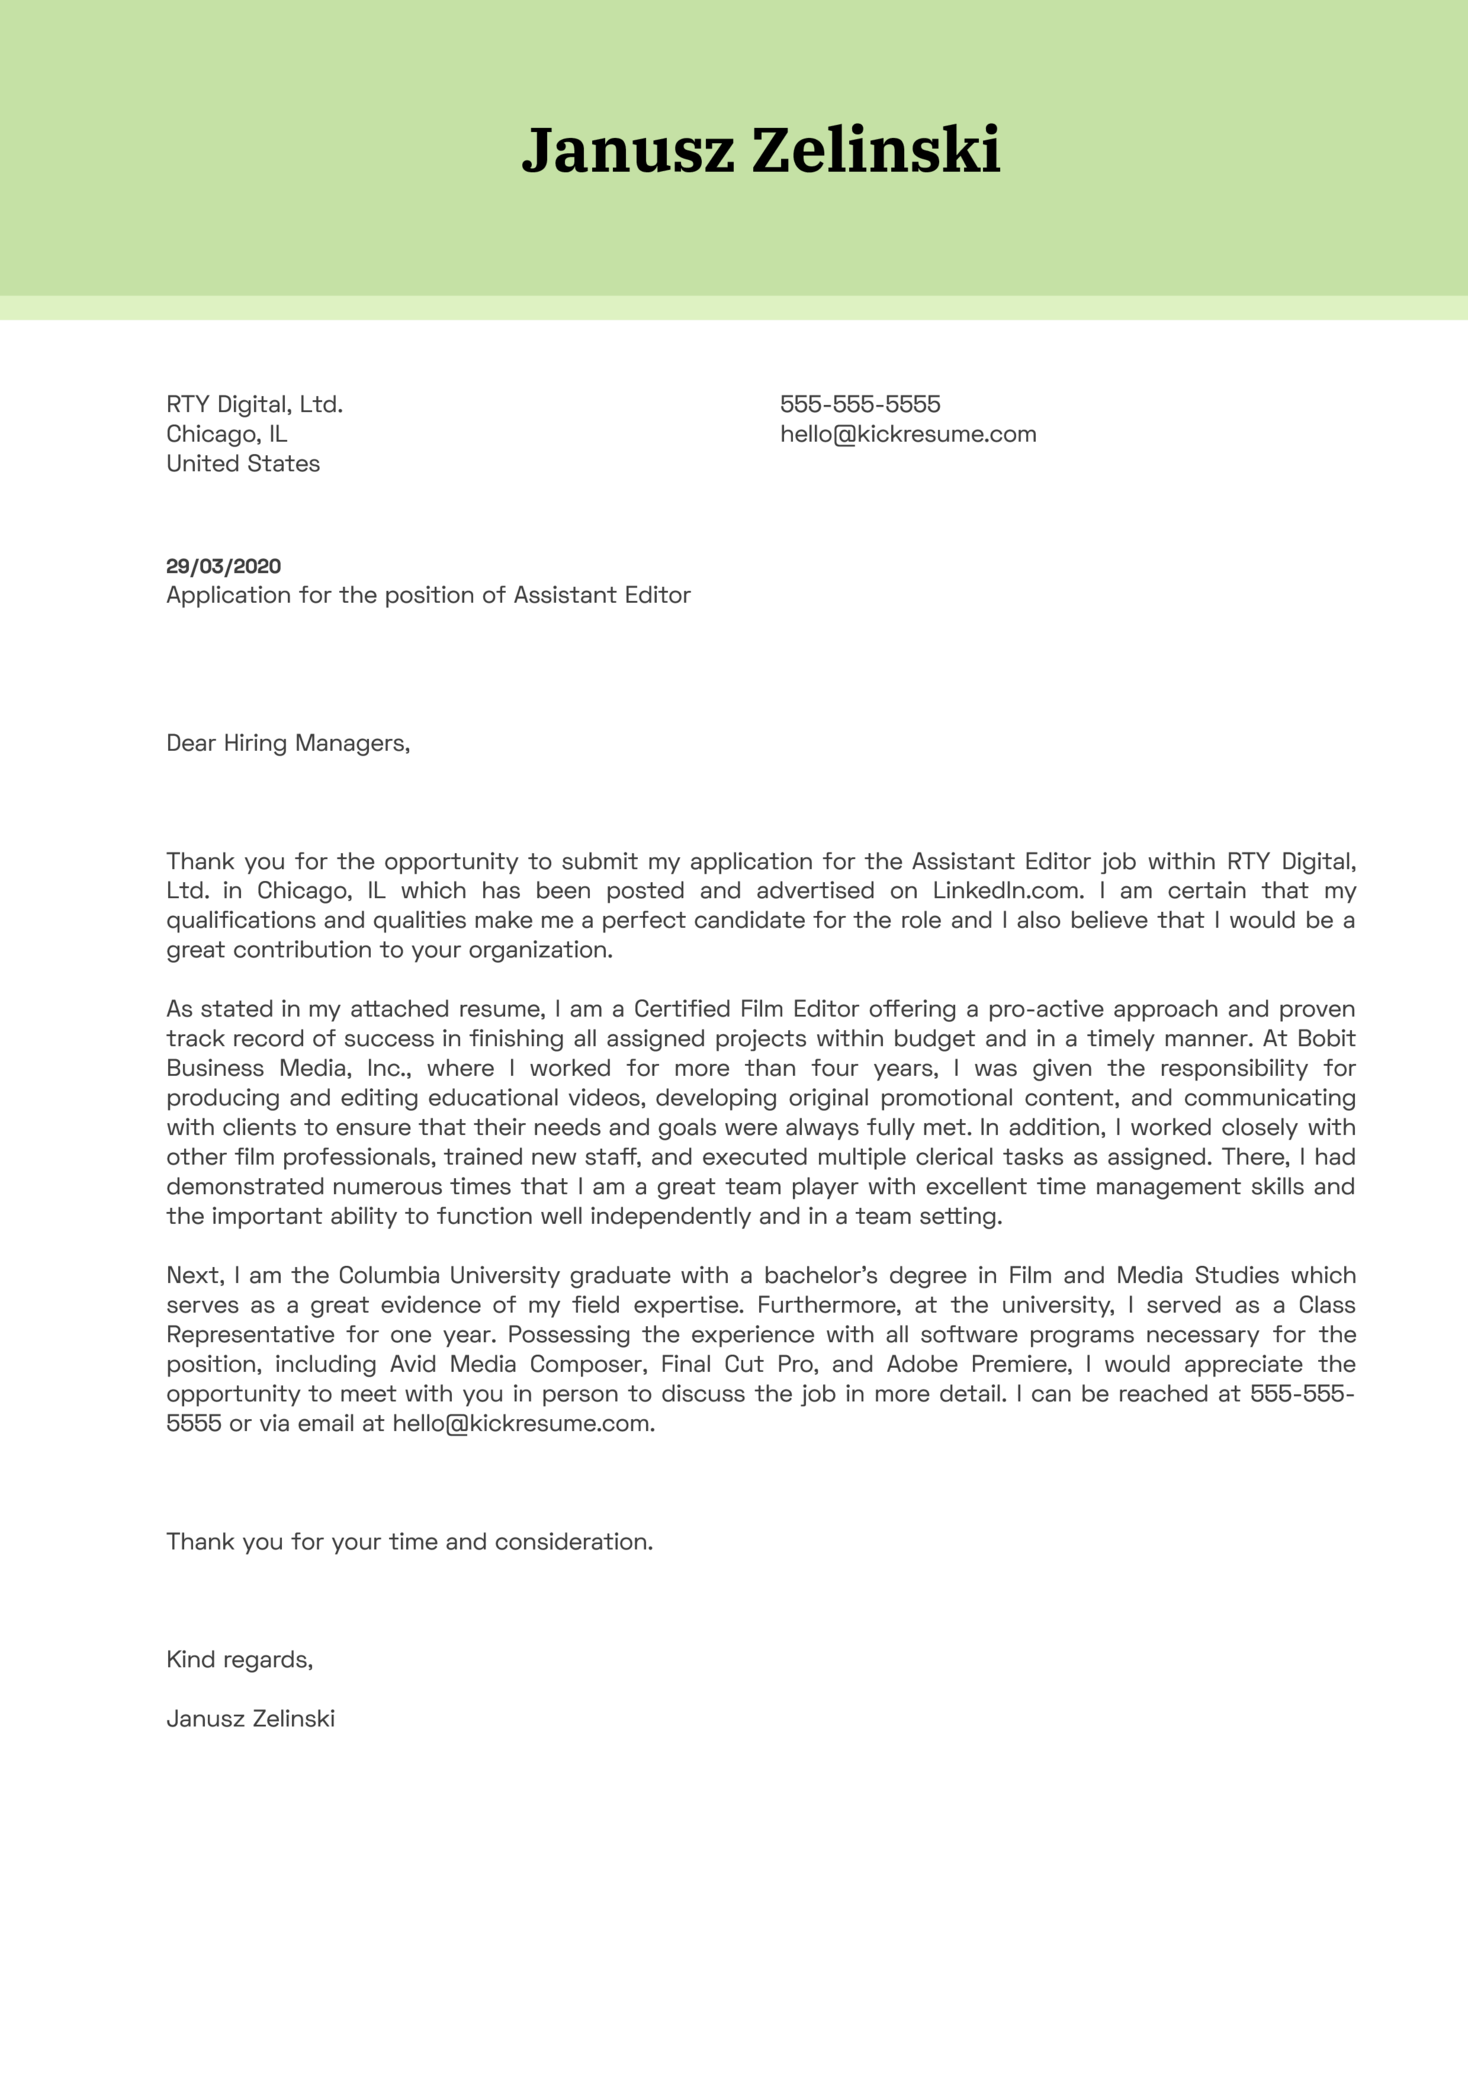 Assistant Editor Cover Letter Example